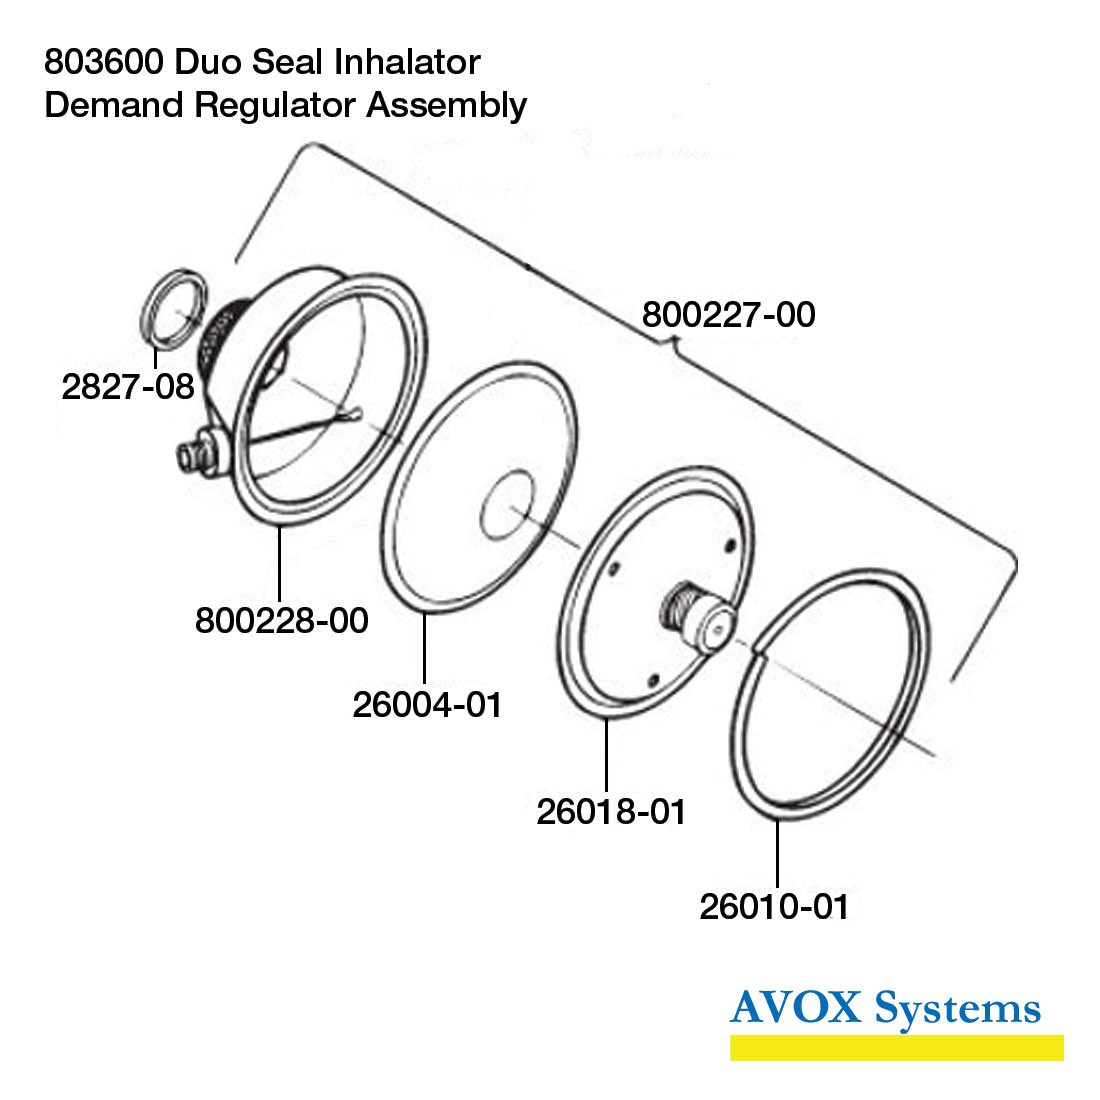 Avox Series 803600 Duo Seal Inhalator without 1st Stage Regulator Assembly without Microphone Assembly 803600-02 - Demand Regulator Assembly